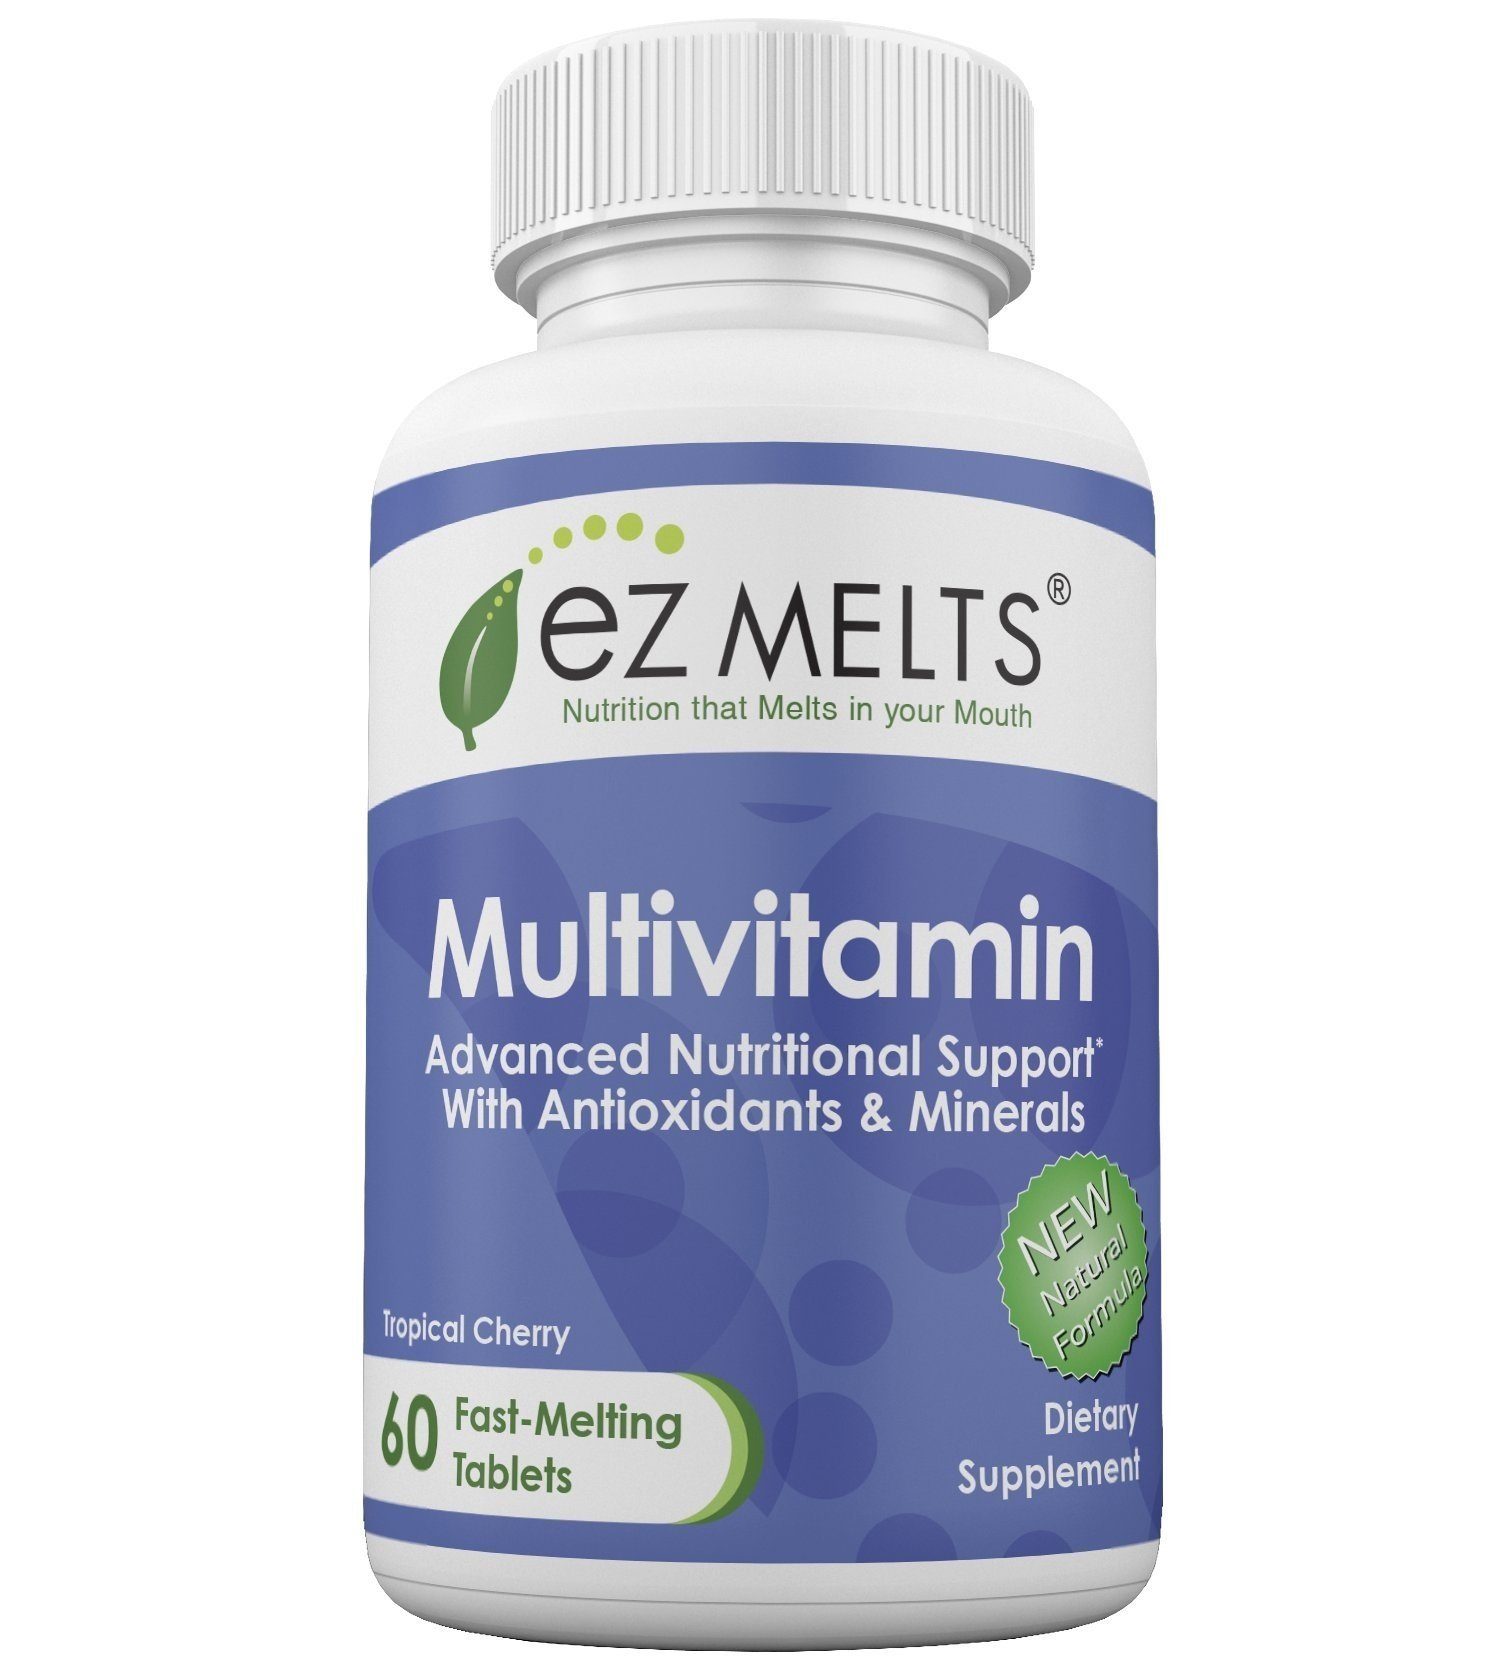 EZ Melts Multivitamin, Dissolvable Vitamins, Vegetarian, Zero Sugar, Natural Cherry Flavor, 60 Fast Melting Tablets, Multivitamin Supplement